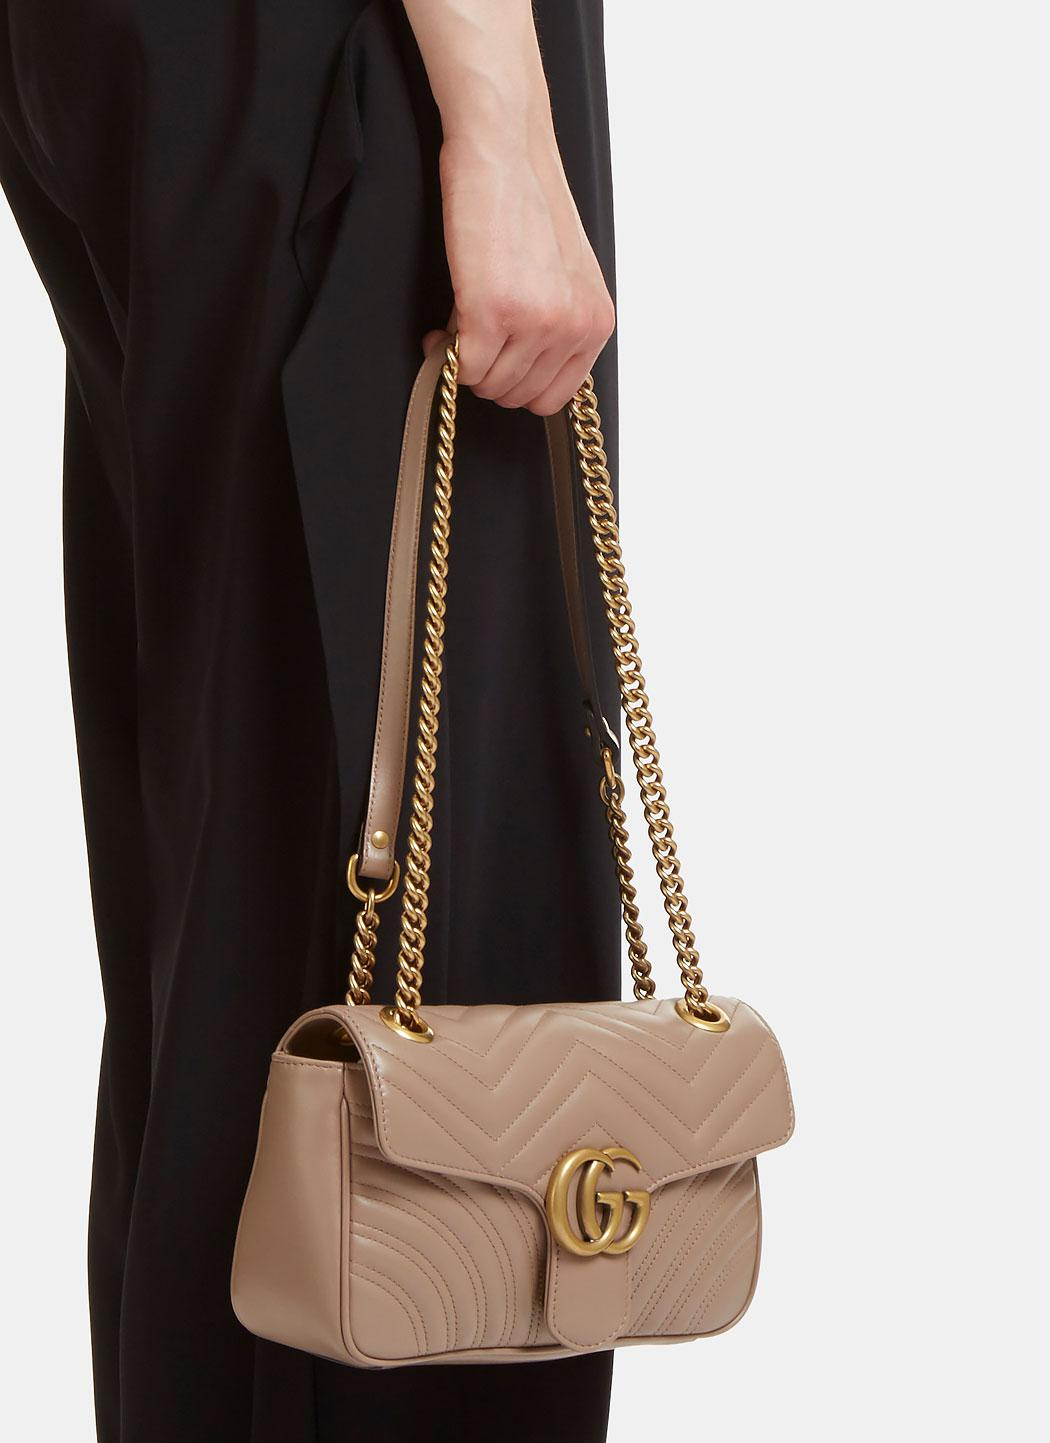 9434817f2b8 Gucci Gg Marmont Matelassé Small Chain Shoulder Bag In Taupe in ...